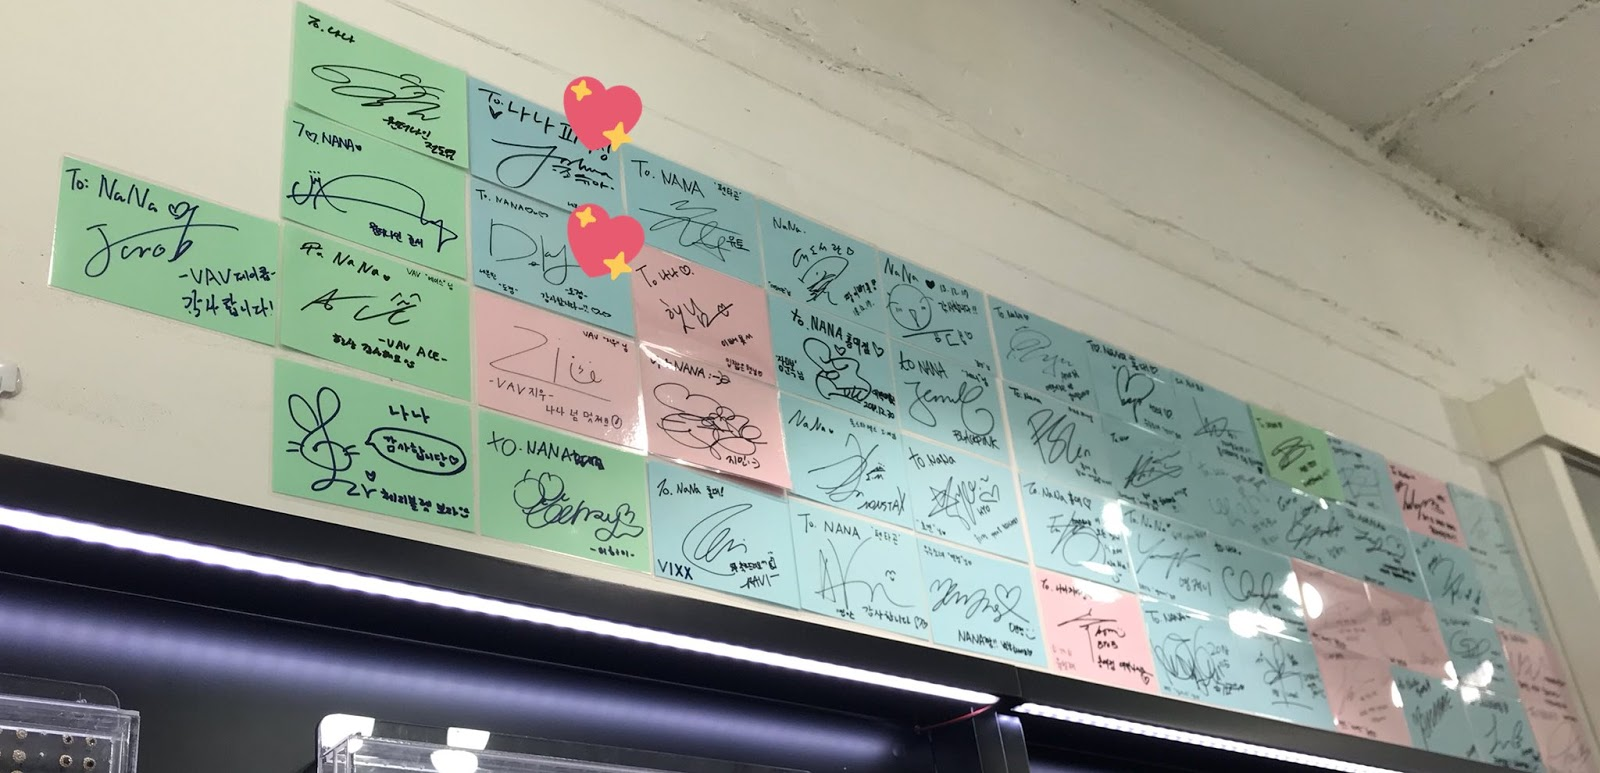 MONSTA X, SEVENTEEN, BLACKPINK Signatures